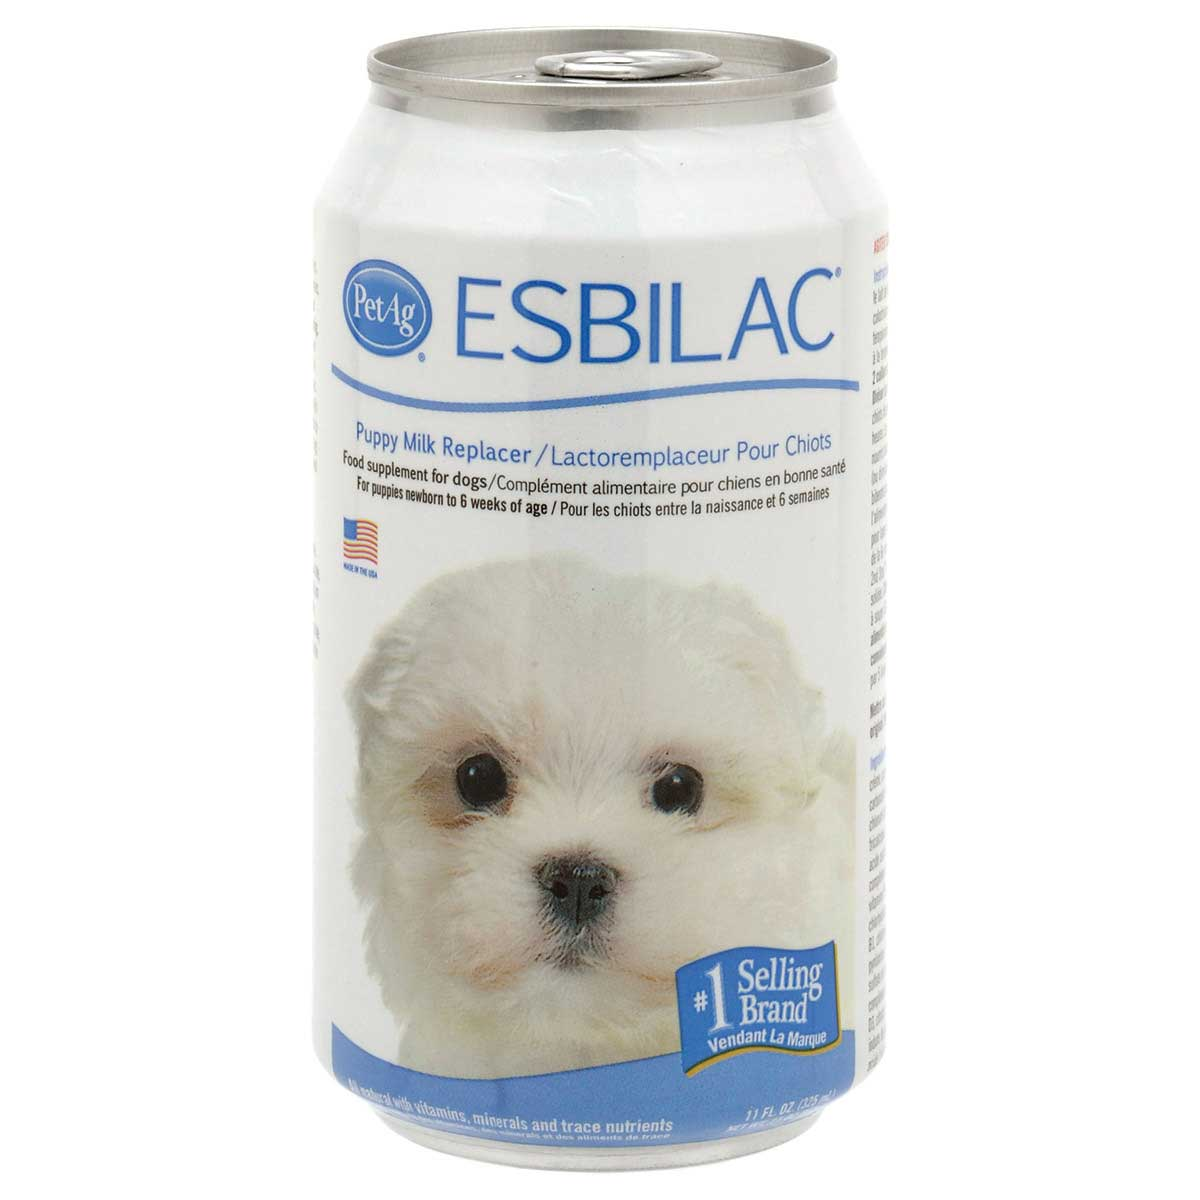 PetAg Esbilac Puppy Milk Replacement Liquid 11 oz